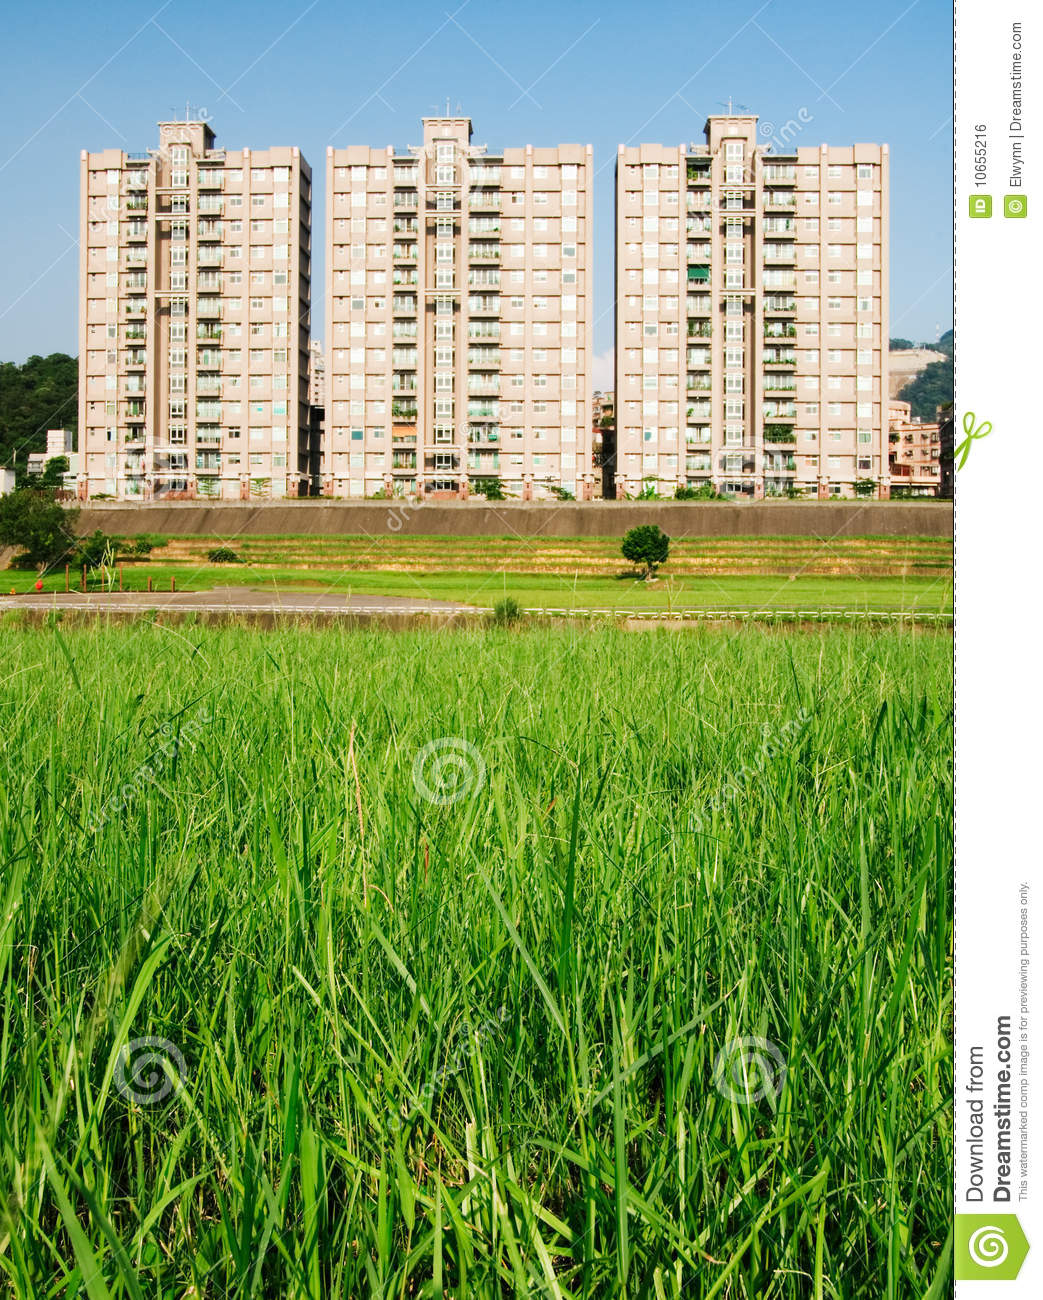 Cityscape Of Apartments With Grassland Stock Photo